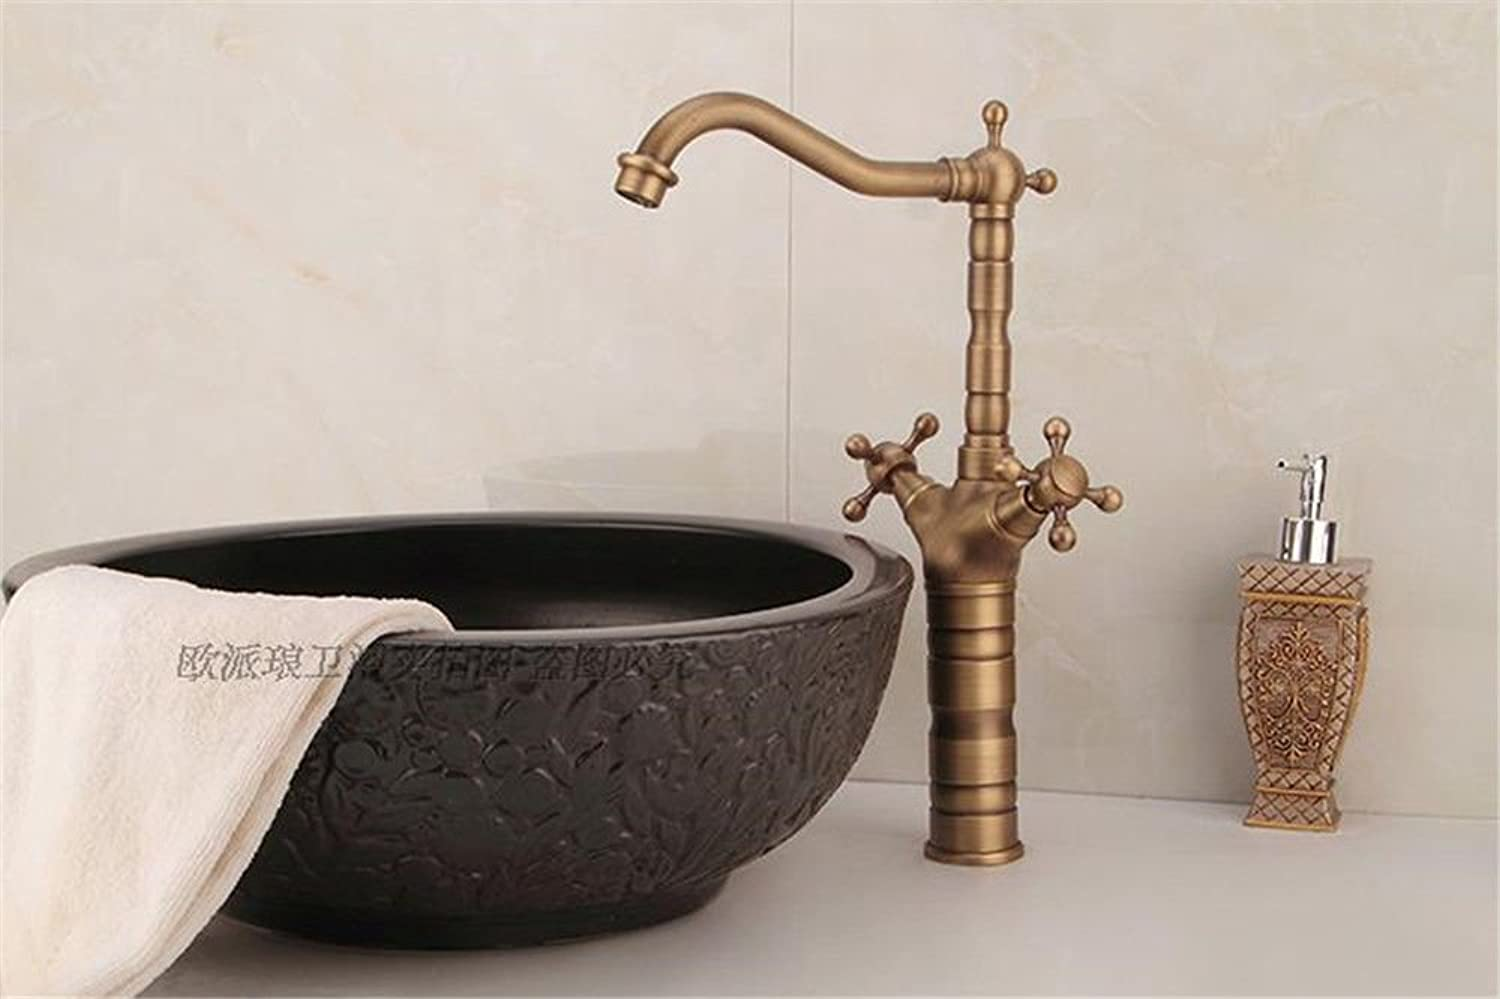 ETERNAL QUALITY Bathroom Sink Basin Tap Brass Mixer Tap Washroom Mixer Faucet All copper antique table basin mixer basin cold water tap retro plus high water faucet Kitch